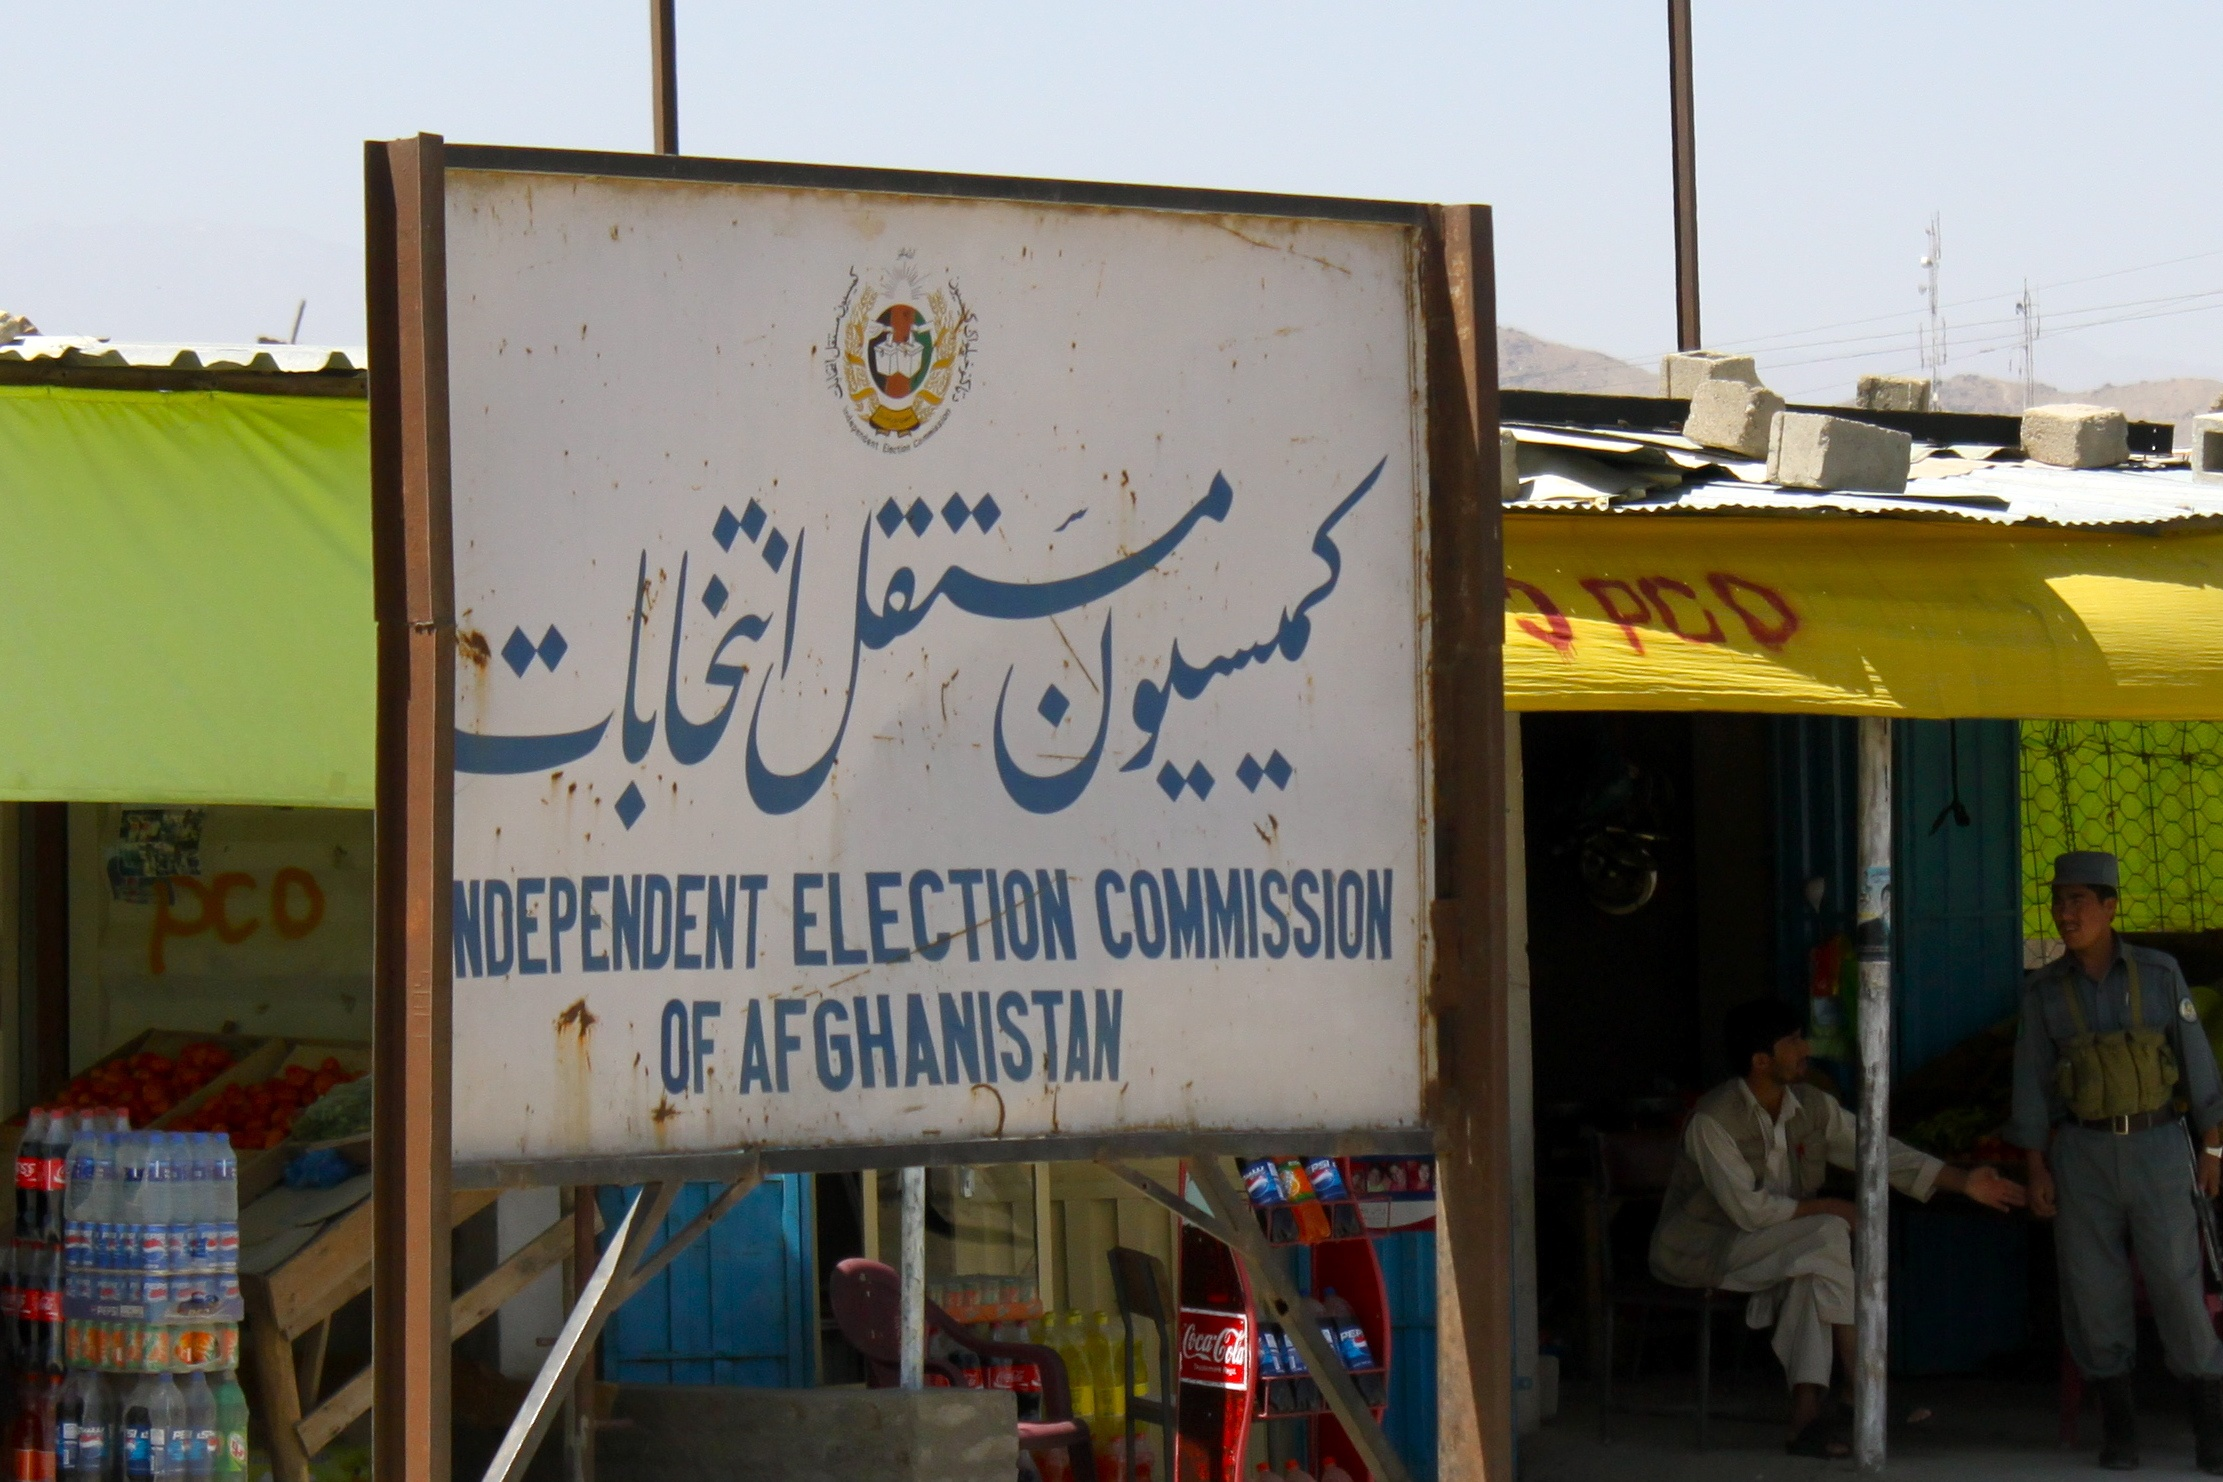 Independent Election Commission of Afghanistan https://commons.wikimedia.org/wiki/File:Independent_Election_Commission_of_Afghanistan.jpg